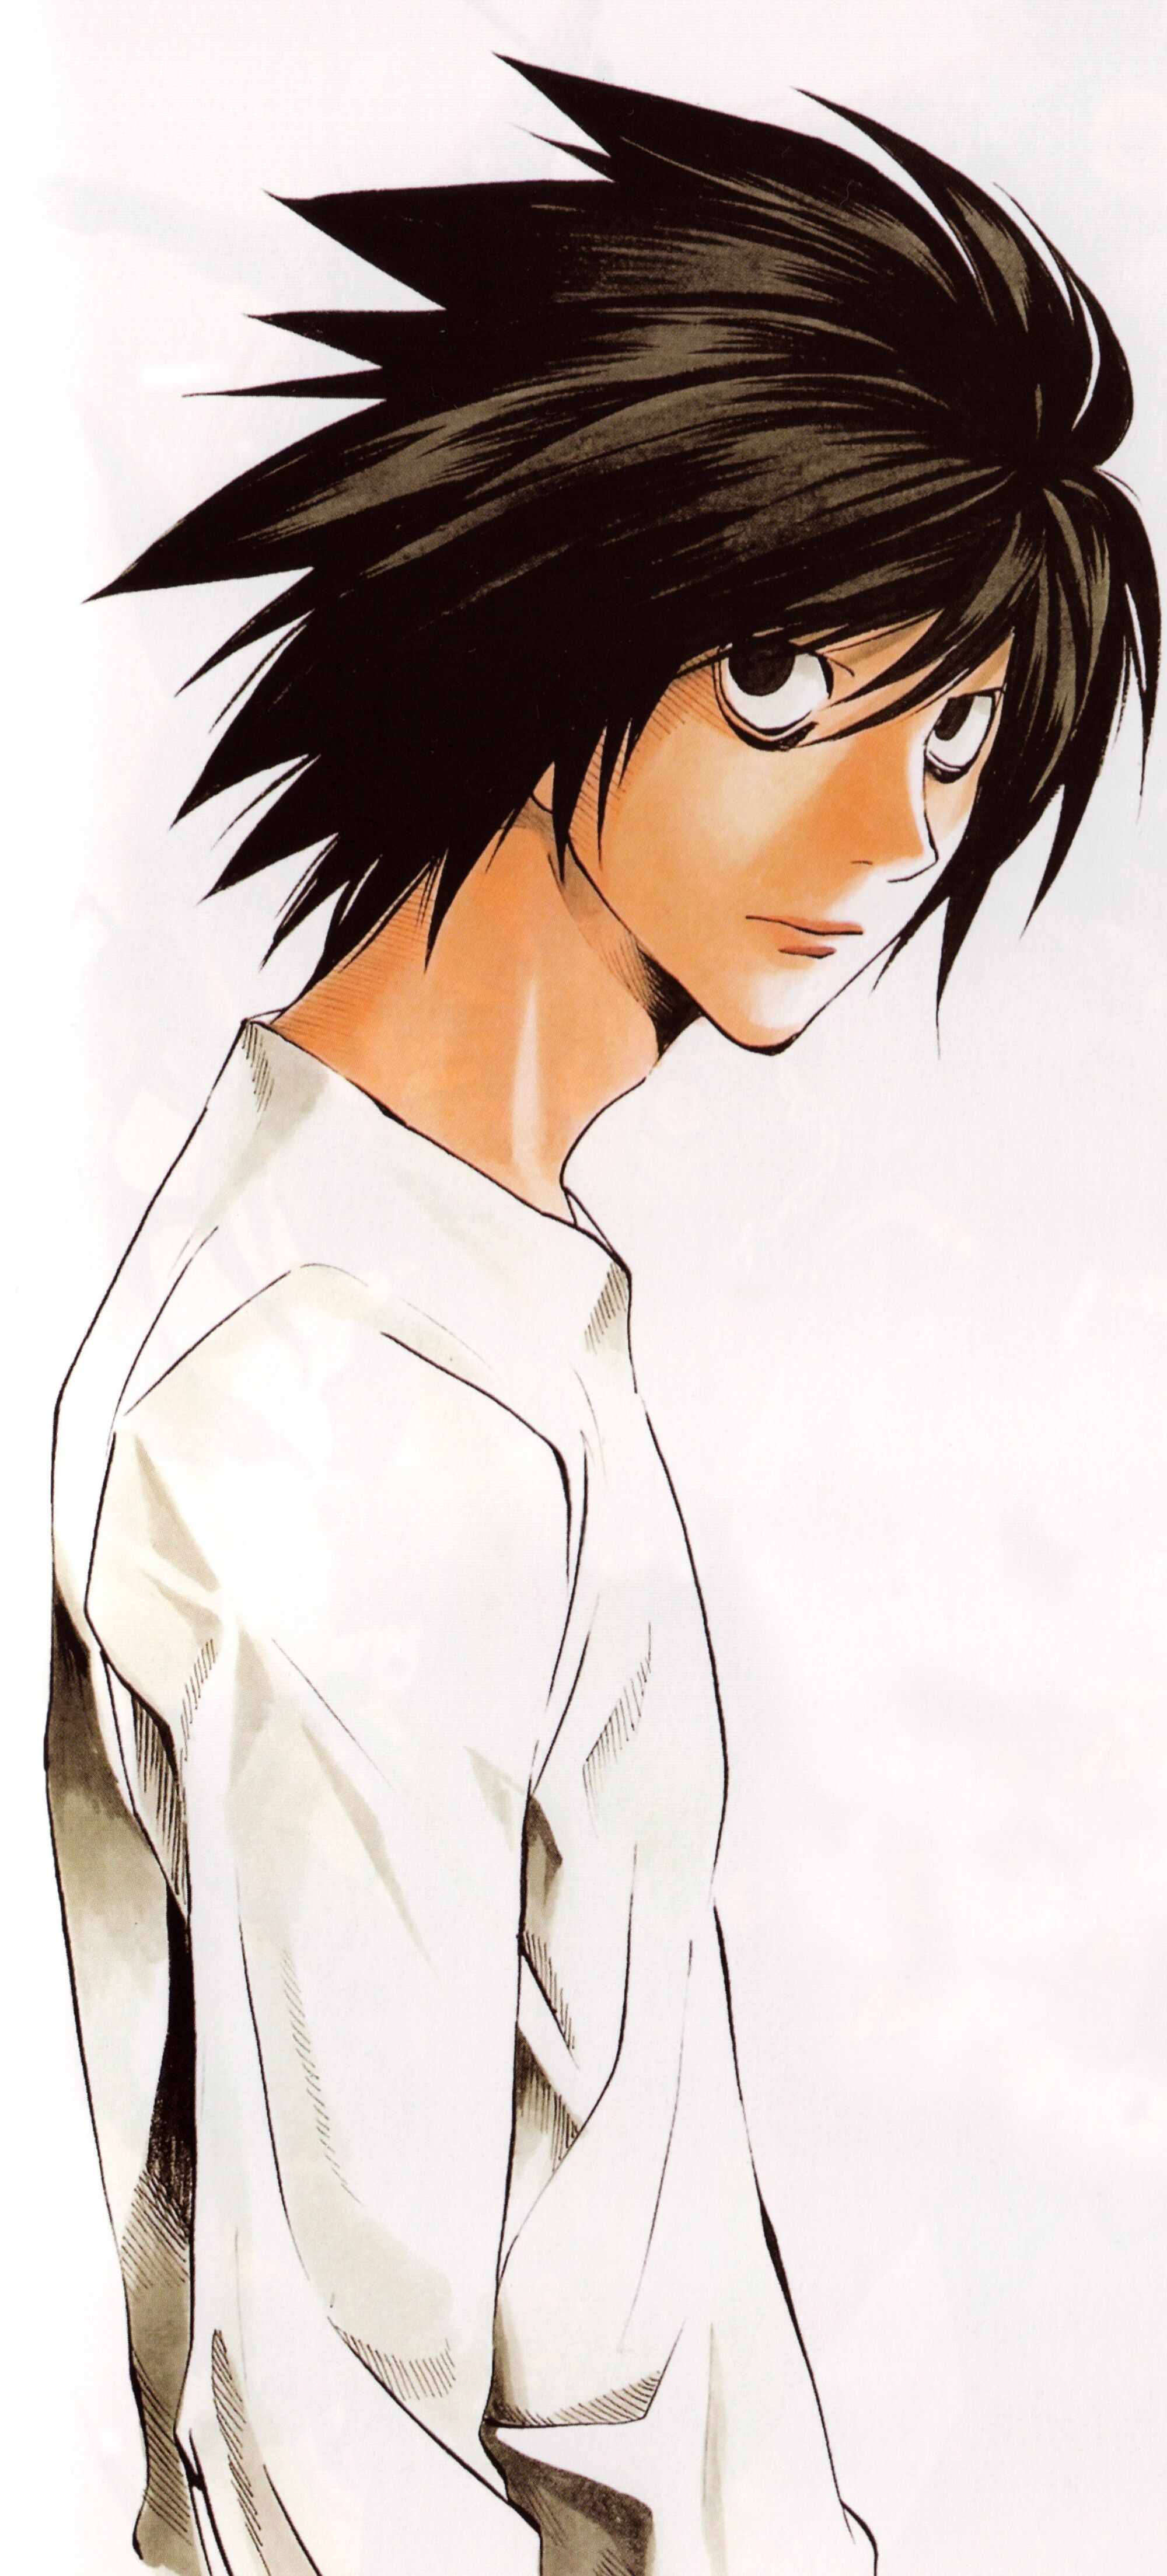 L Lawliet: Remember the Name by RhymeLawliet on DeviantArt